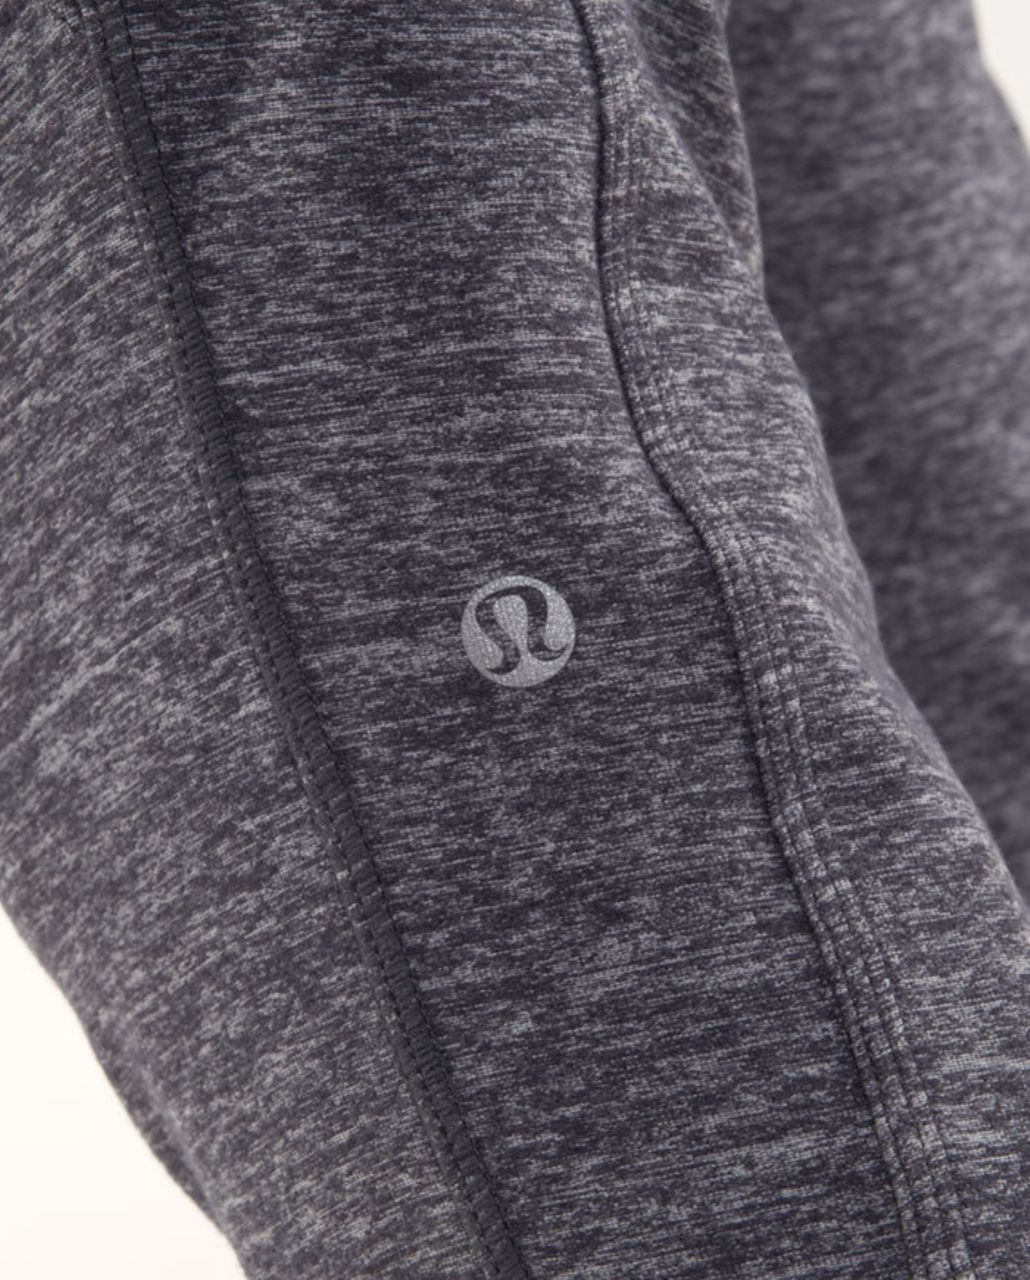 Lululemon Hang Loose Pant - Heathered Coal